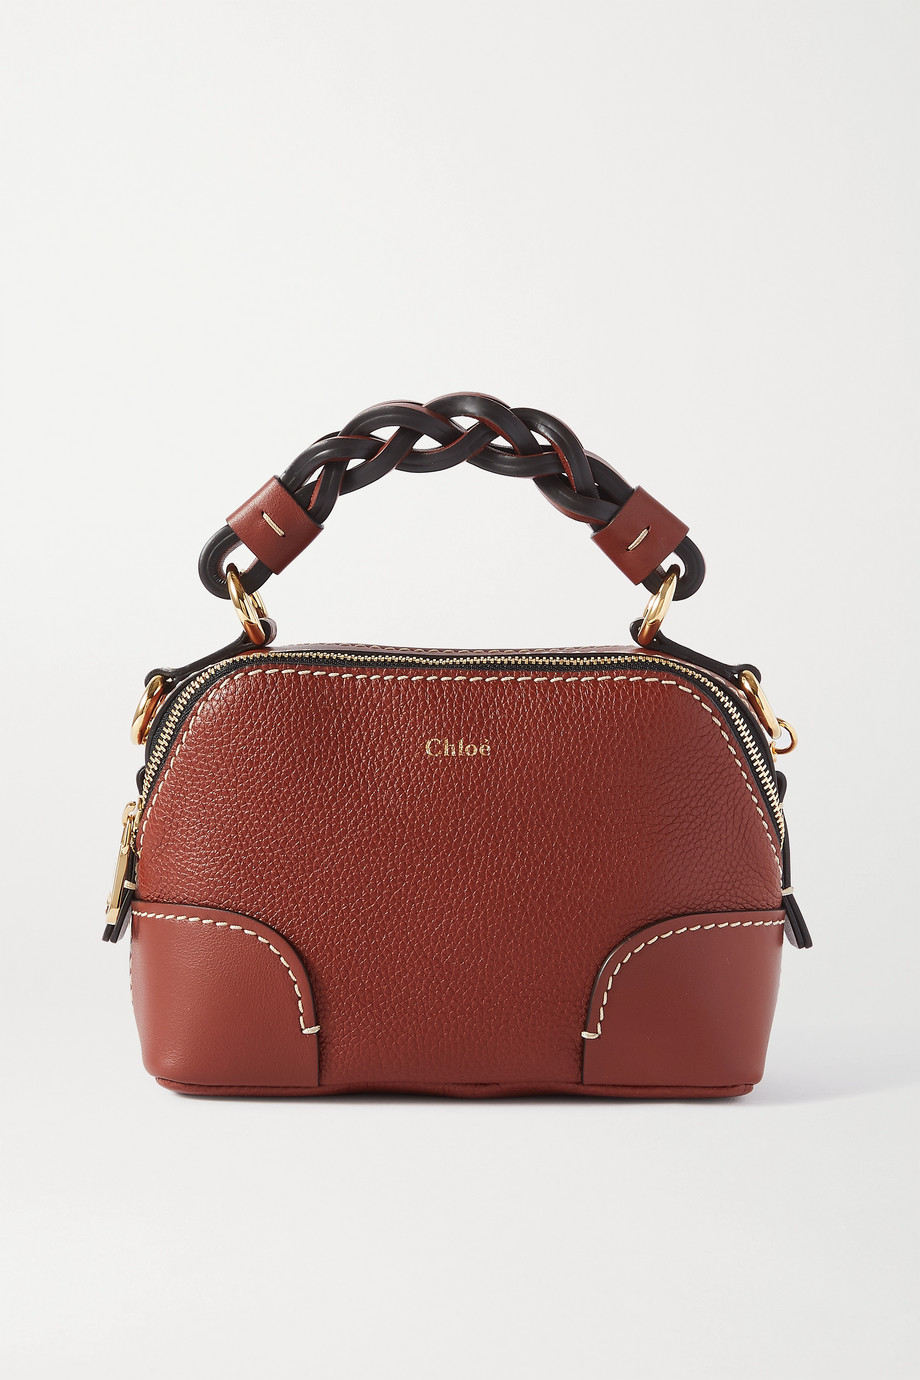 Chloé Daria mini smooth and full-grain leather tote bag